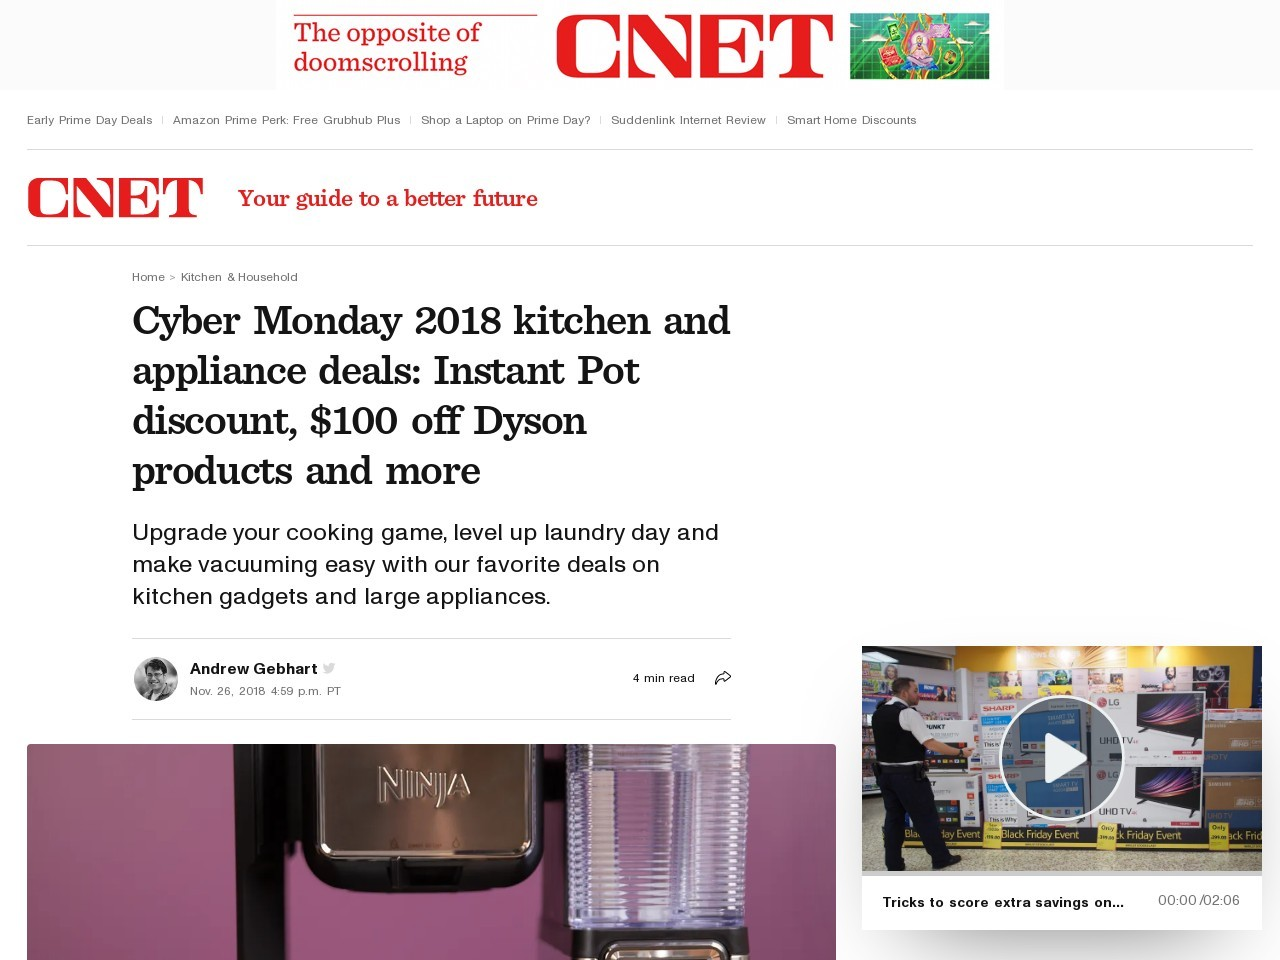 Cyber Monday 2018 kitchen and appliance deals starting now: Instant Pot's Black Friday discount, $100 off Vitamix products and more     – CNET